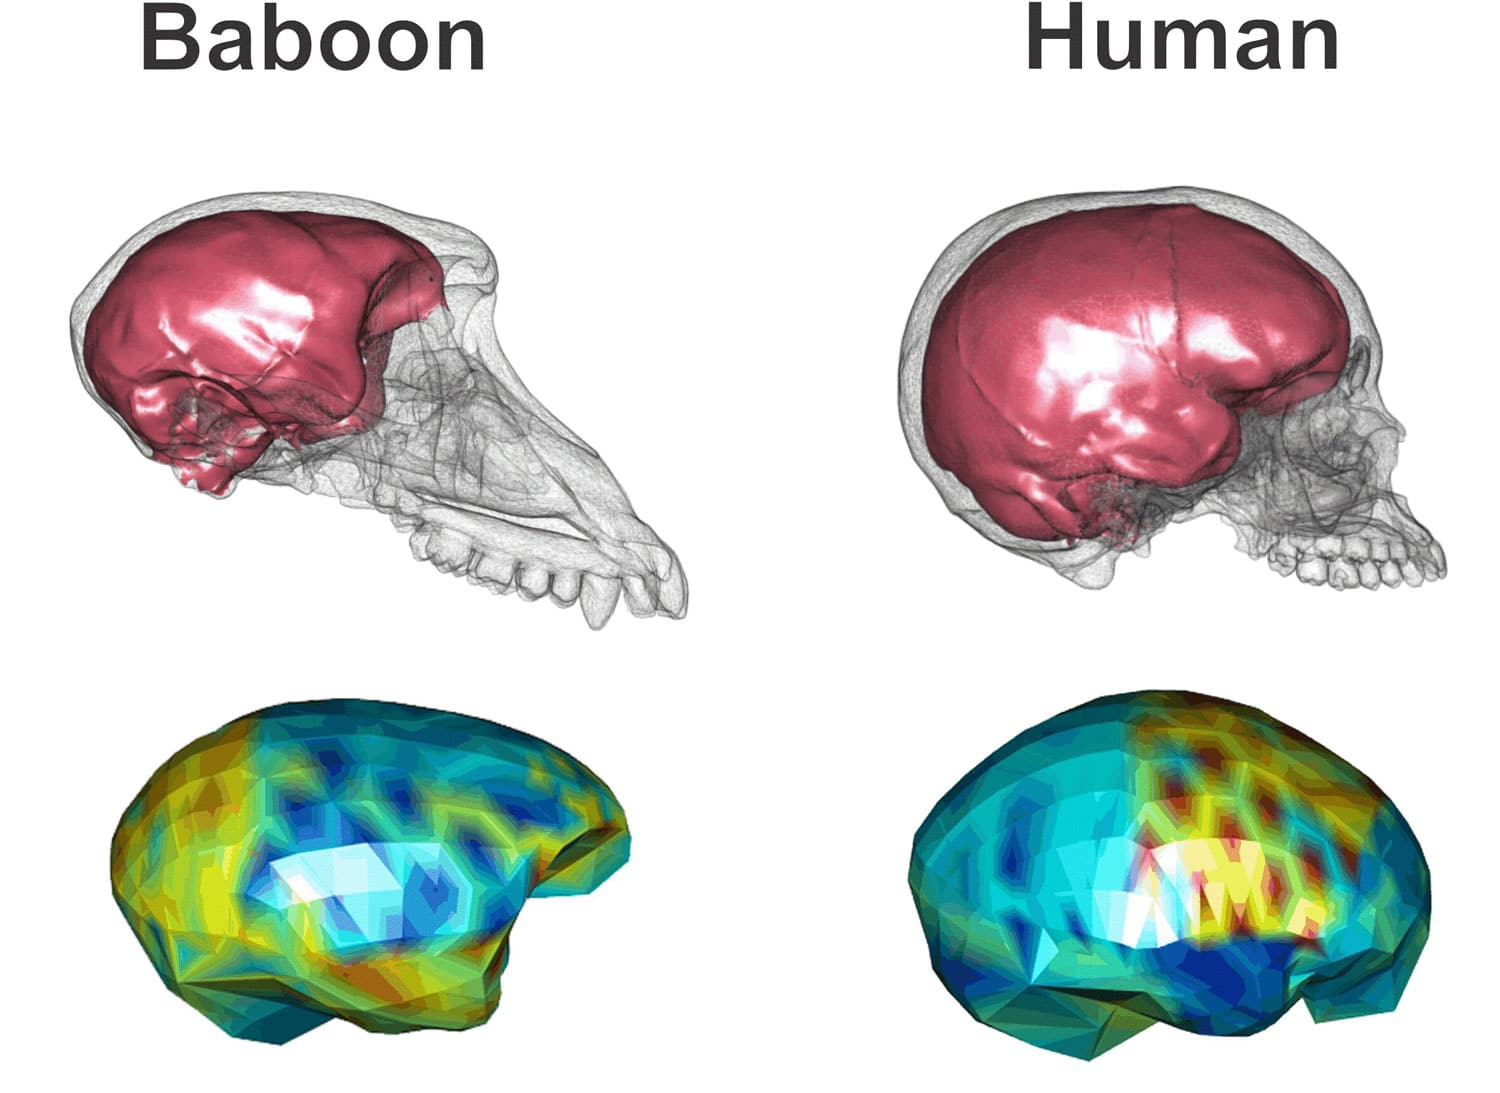 How humans evolved to have distinct large, globular shaped brains?